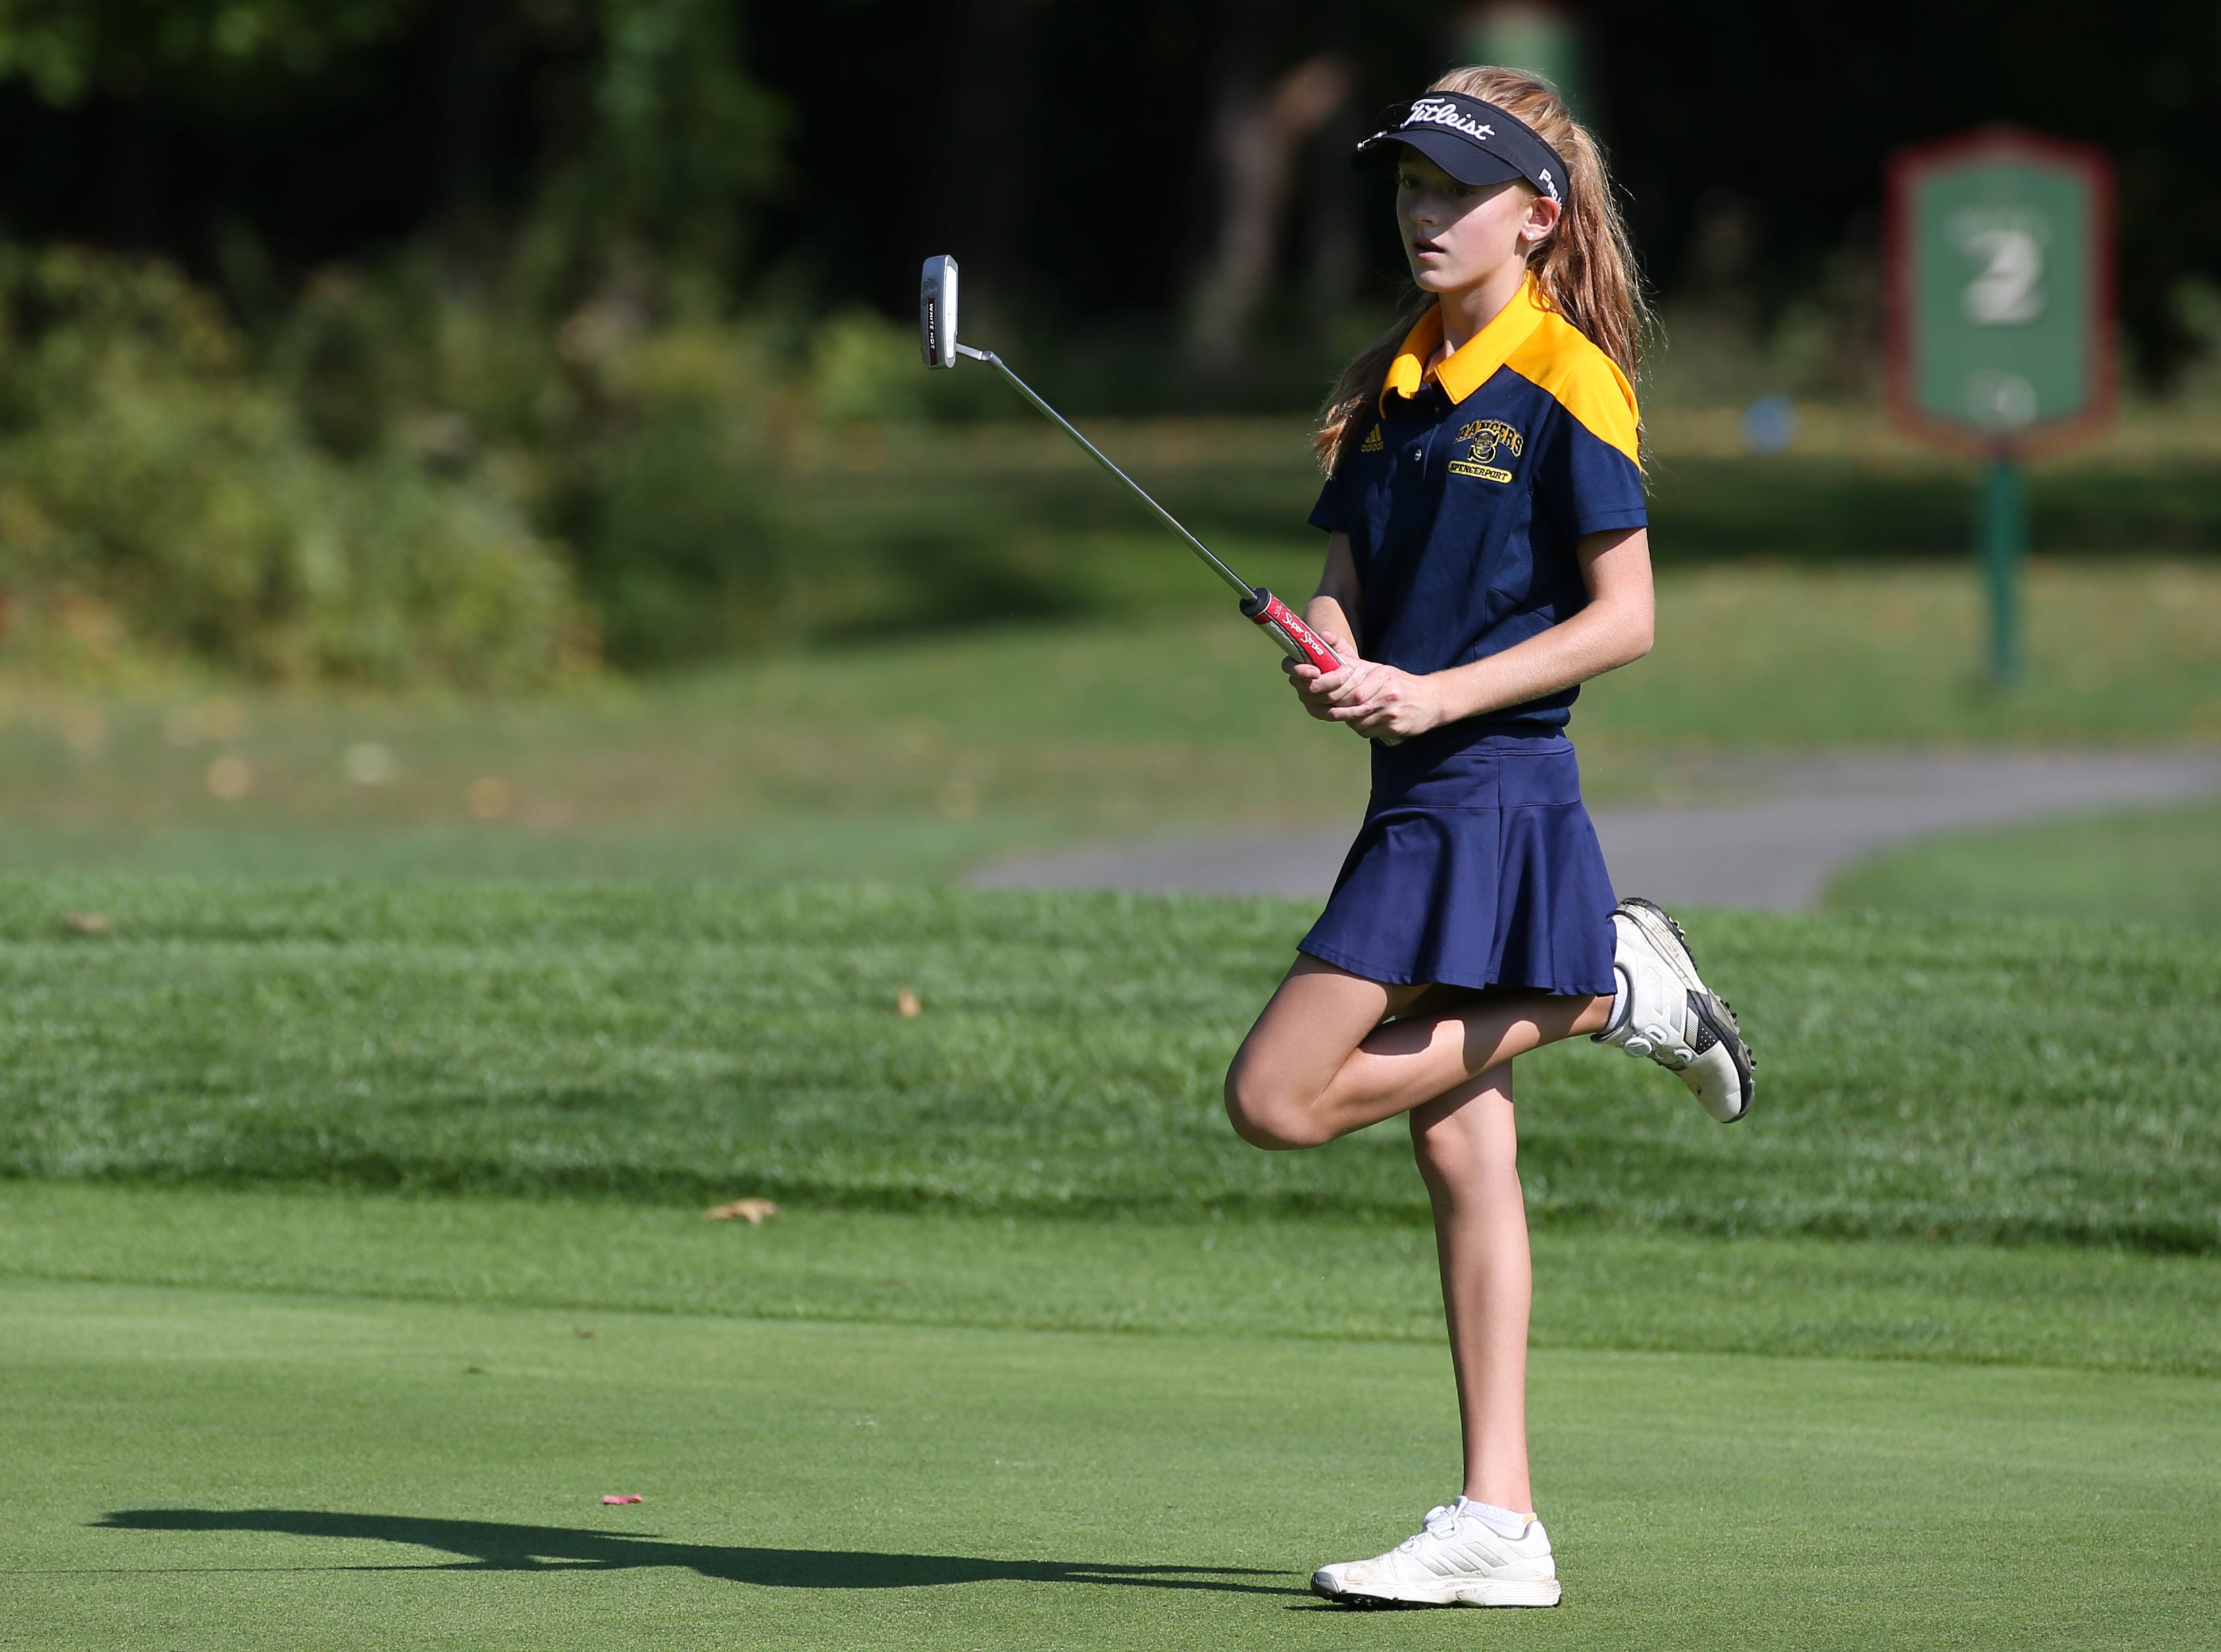 Julia Zigrossi reacts to a missed putt on 1 at Section V girls golf championship at Deerfield Country Club.